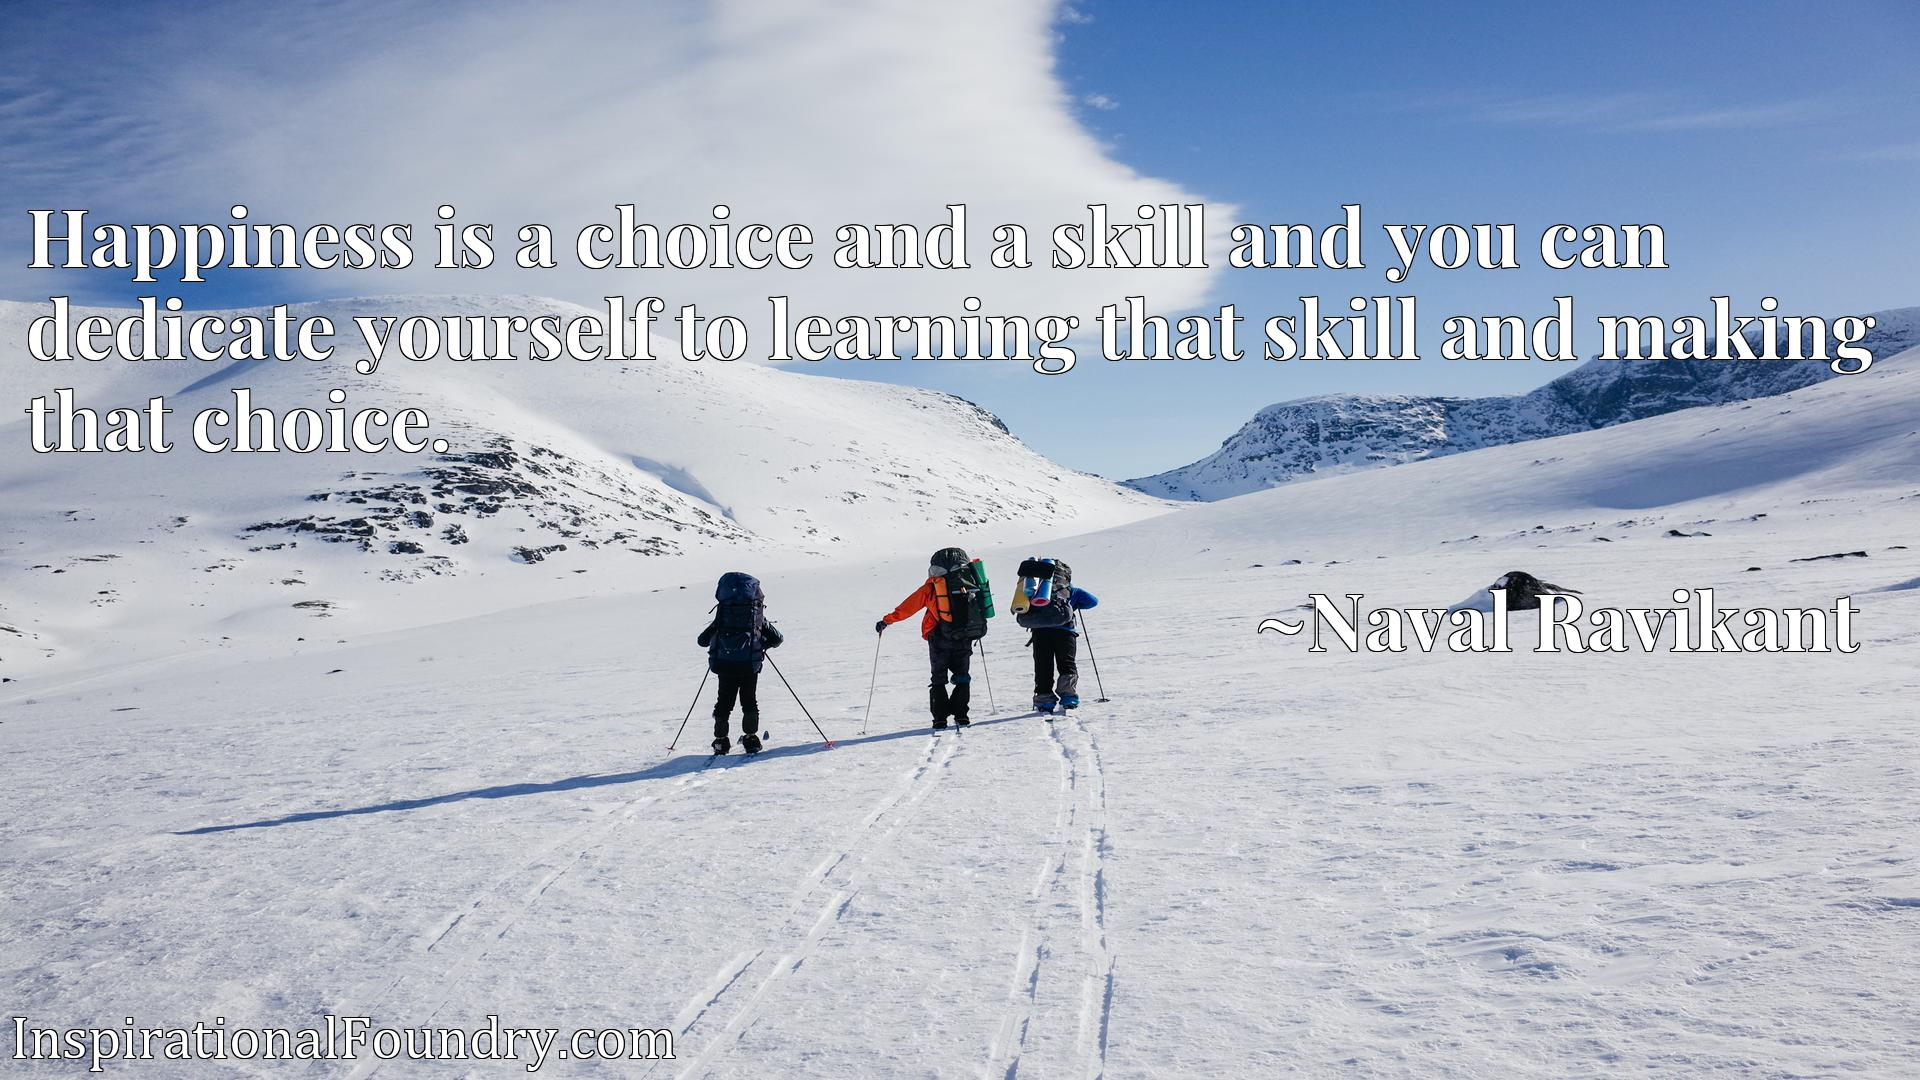 Happiness is a choice and a skill and you can dedicate yourself to learning that skill and making that choice.